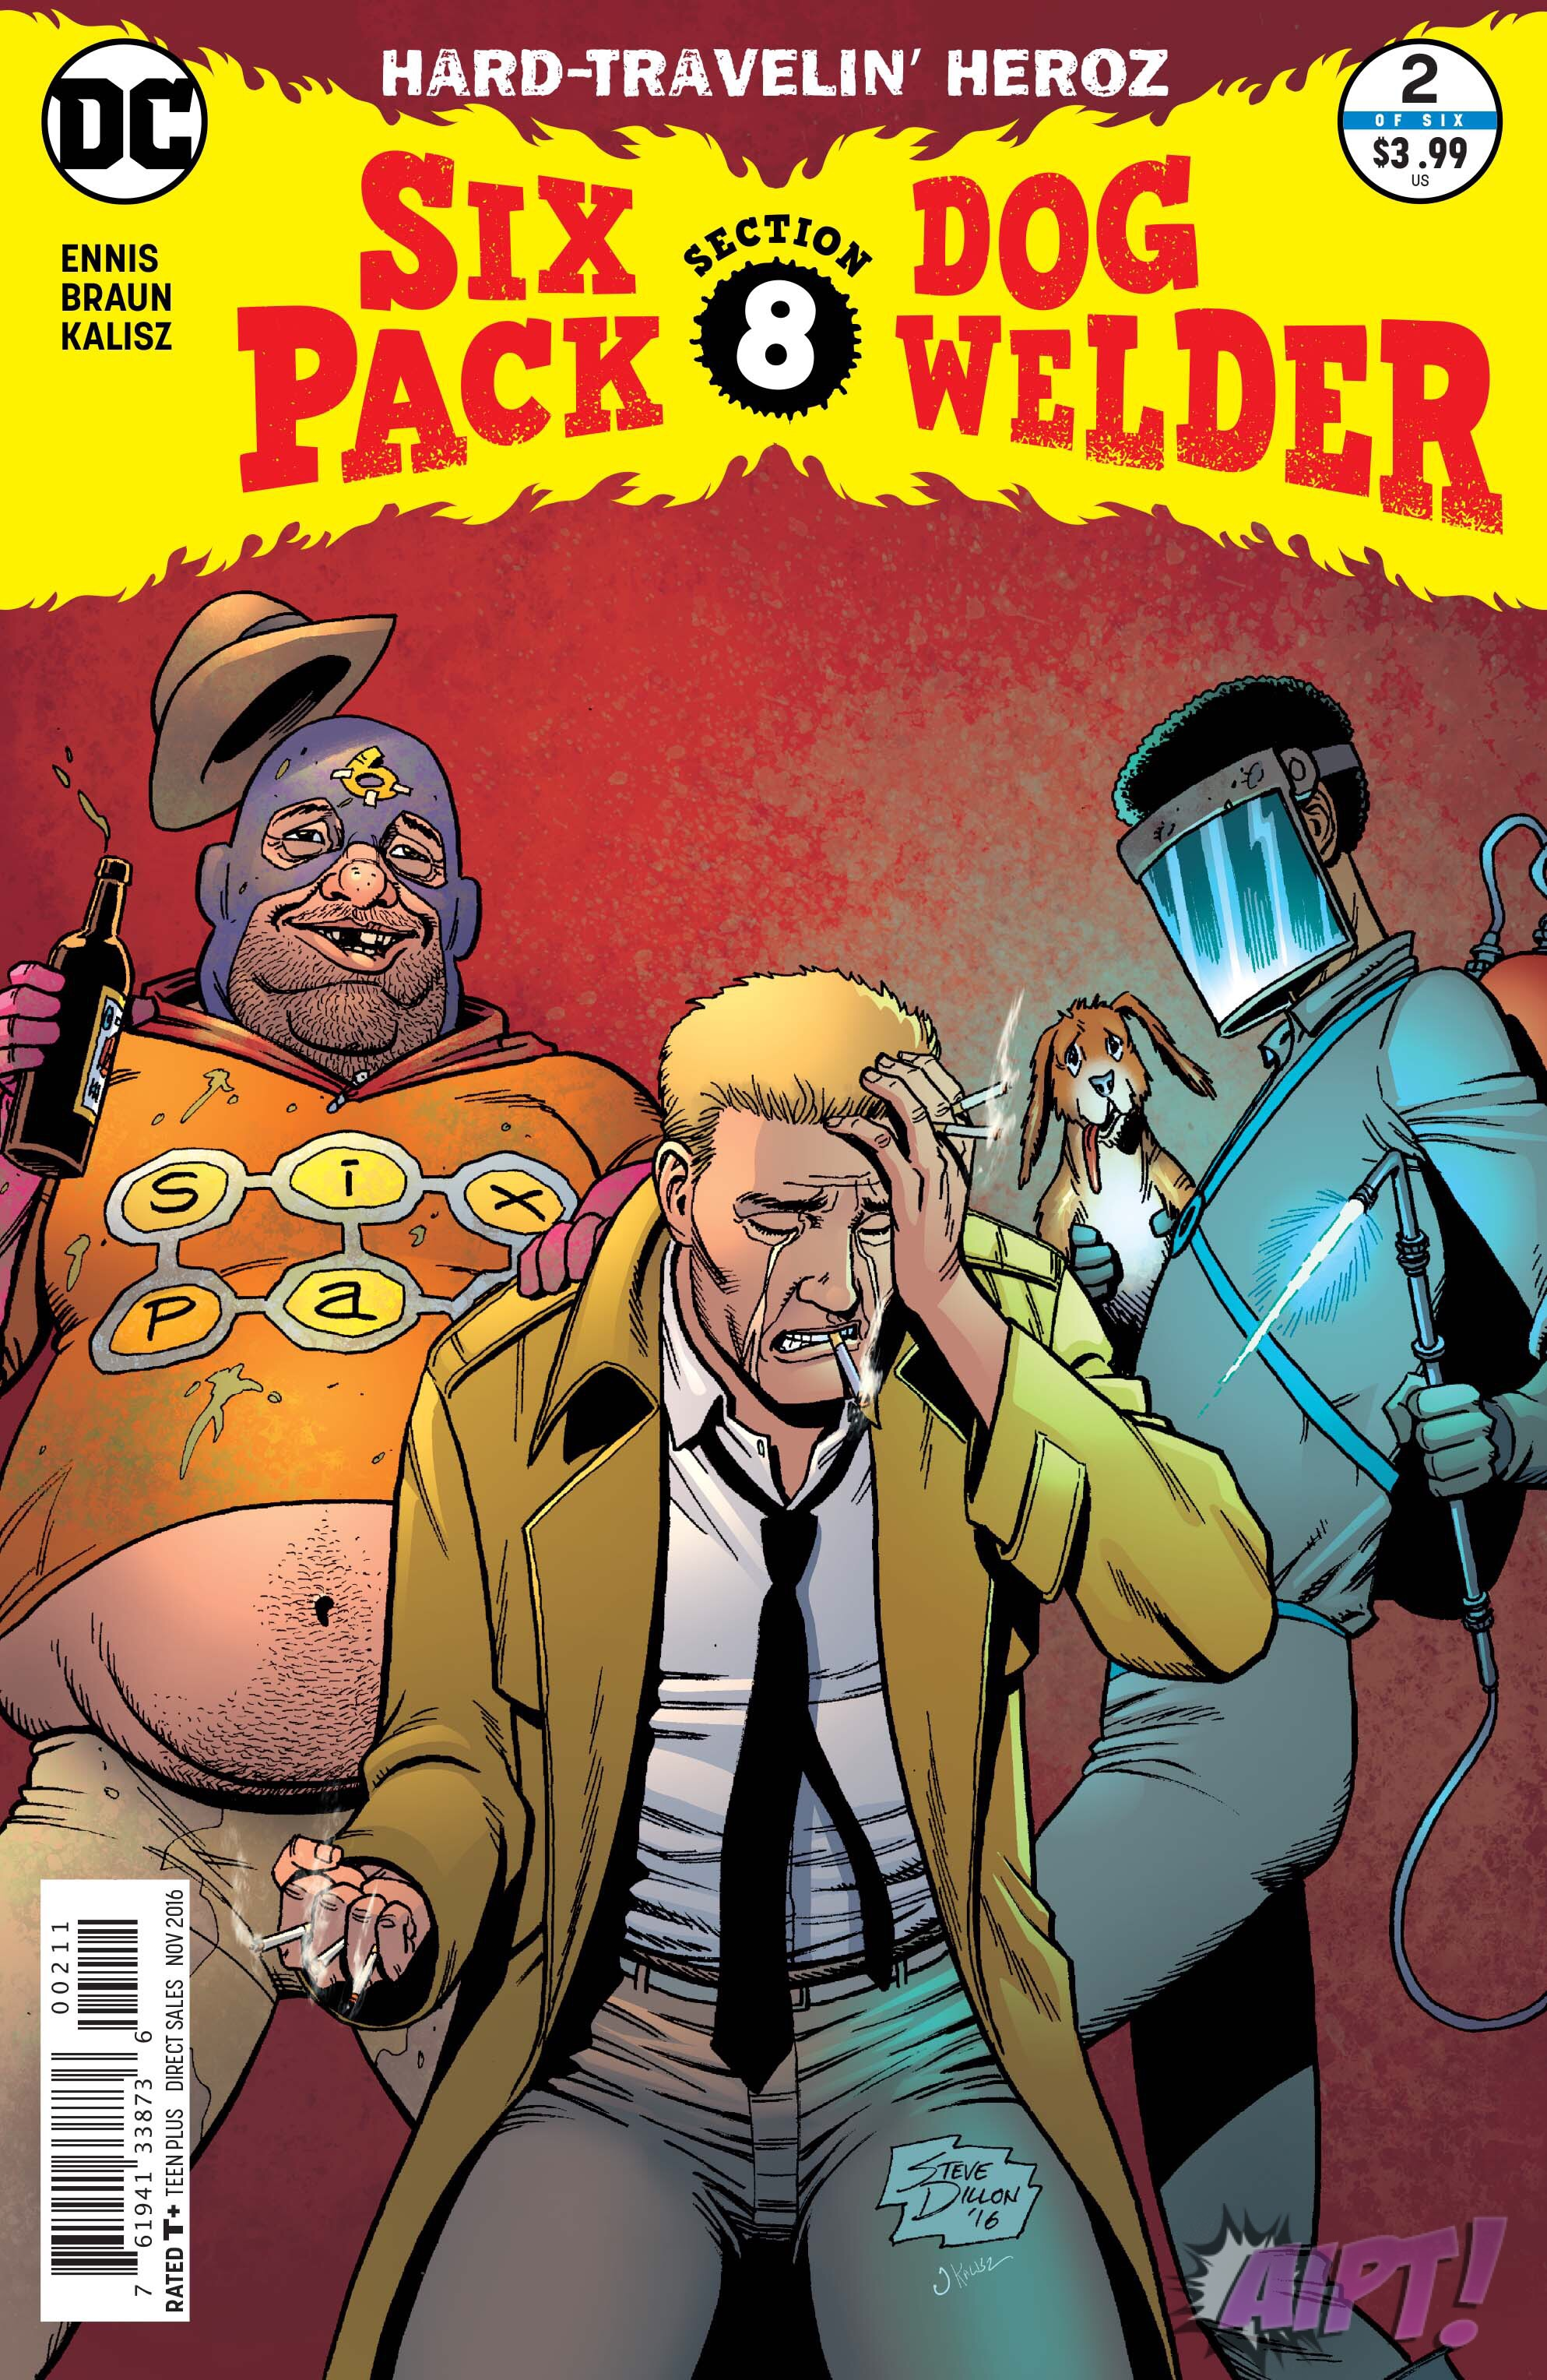 [EXCLUSIVE] DC Preview: Sixpack and Dogwelder: Hard-Travelin' Heroz #2